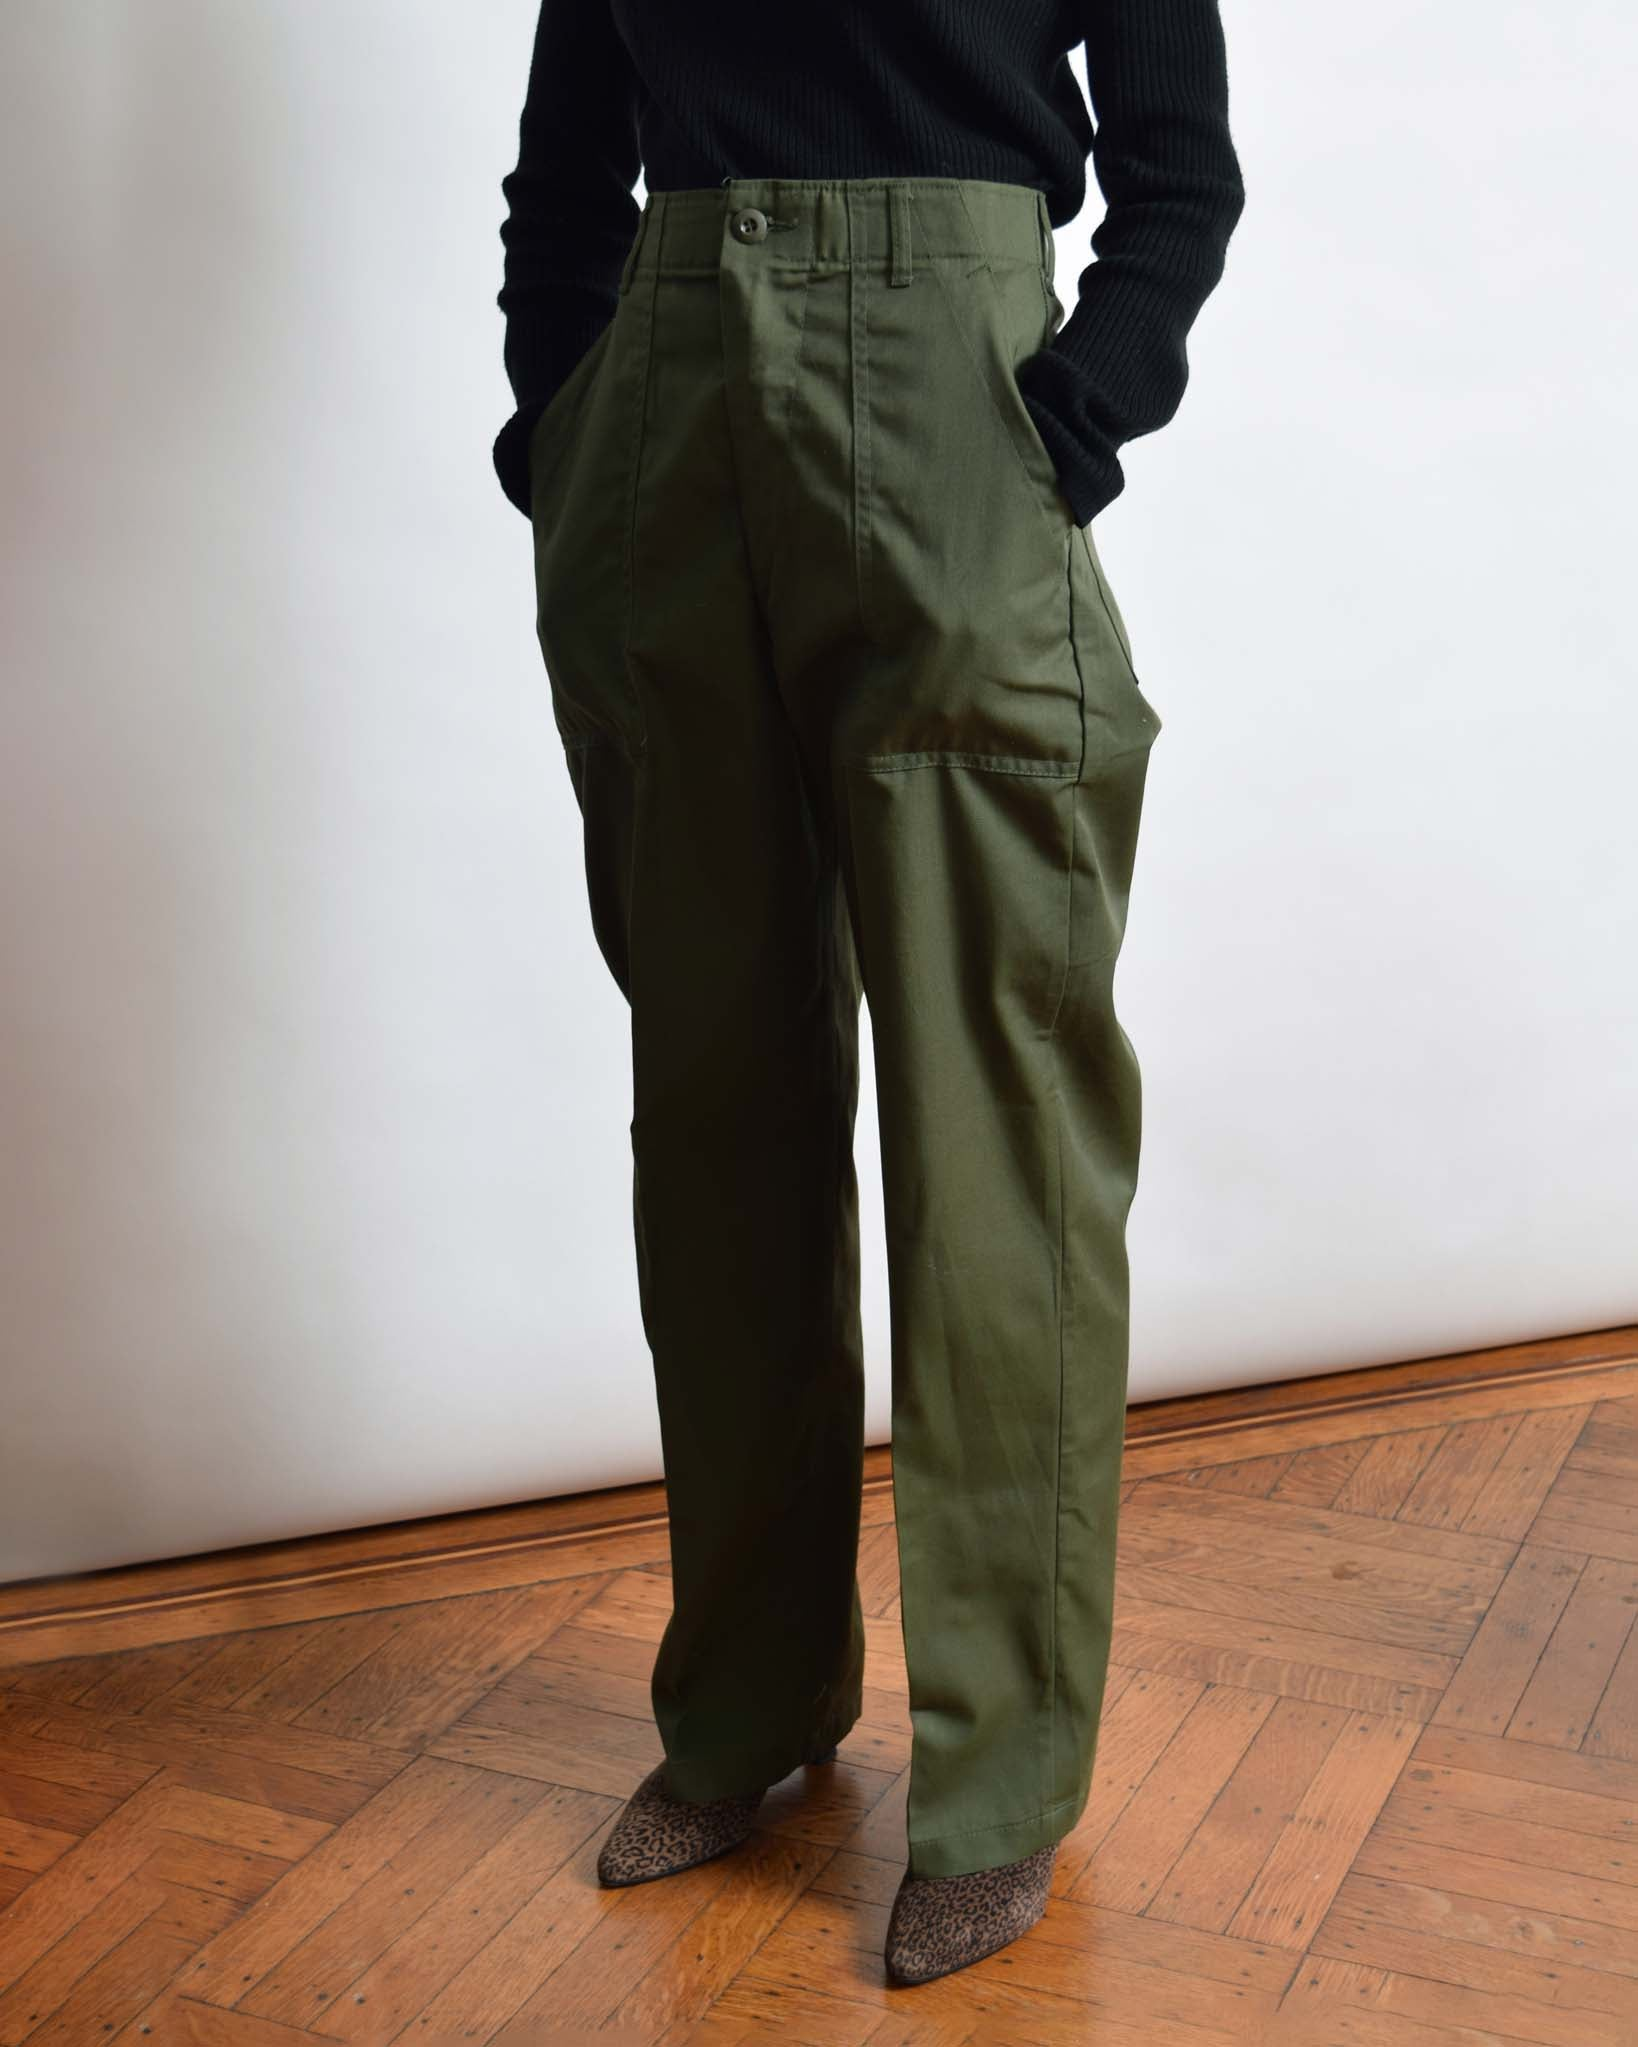 Vintage OG-507 Army Slacks